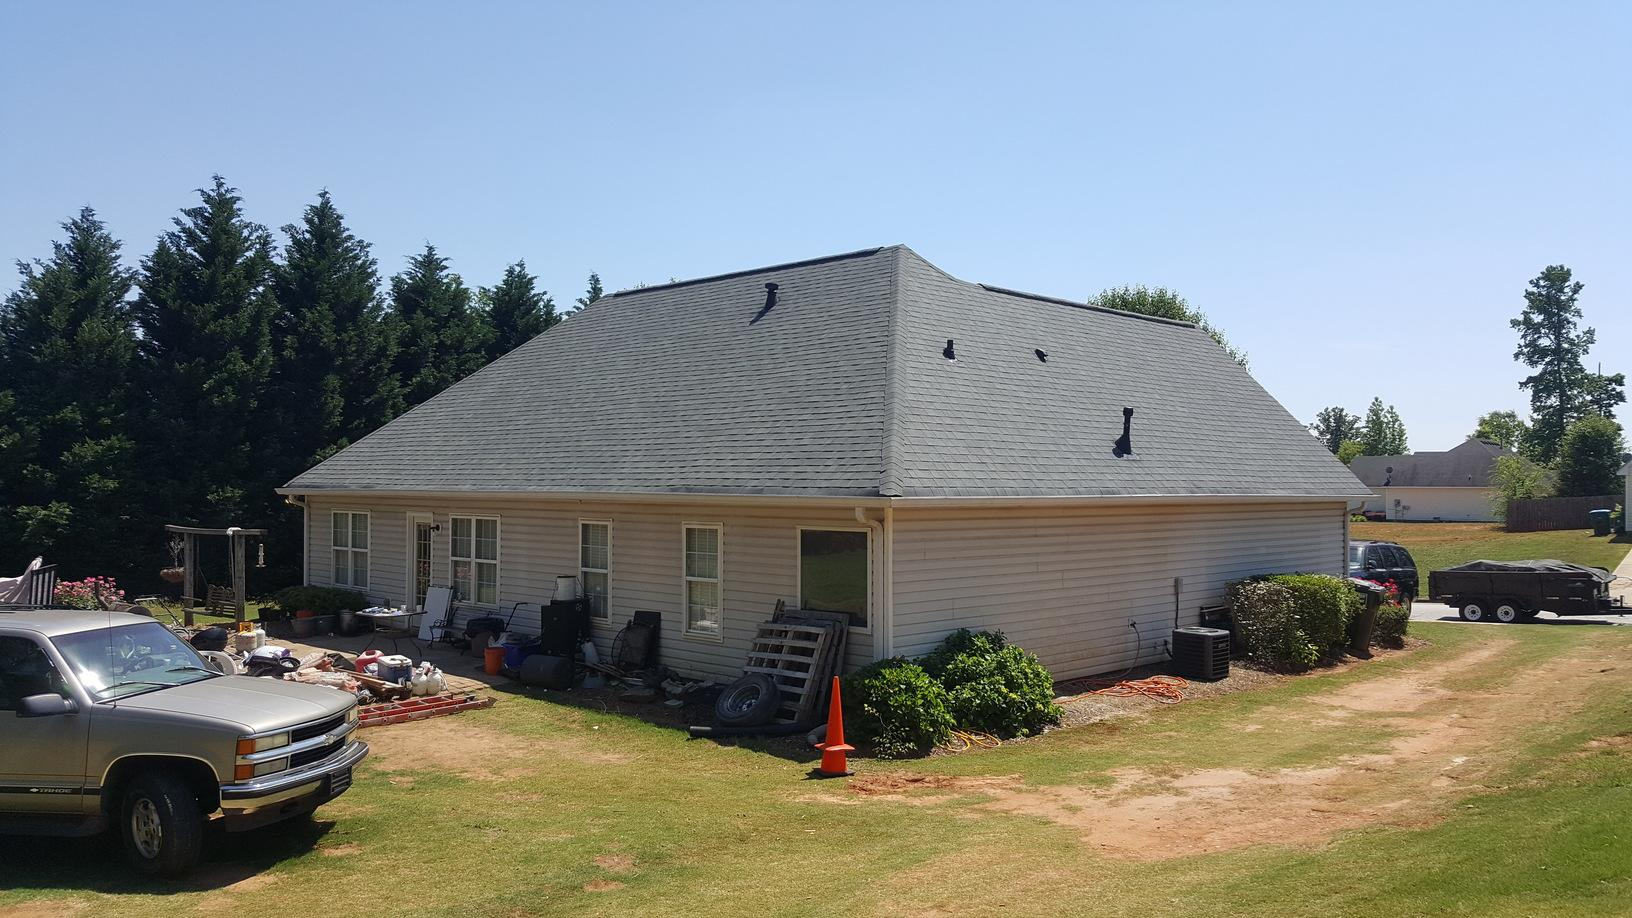 New Roof Replacement in Snellville, GA - After Photo